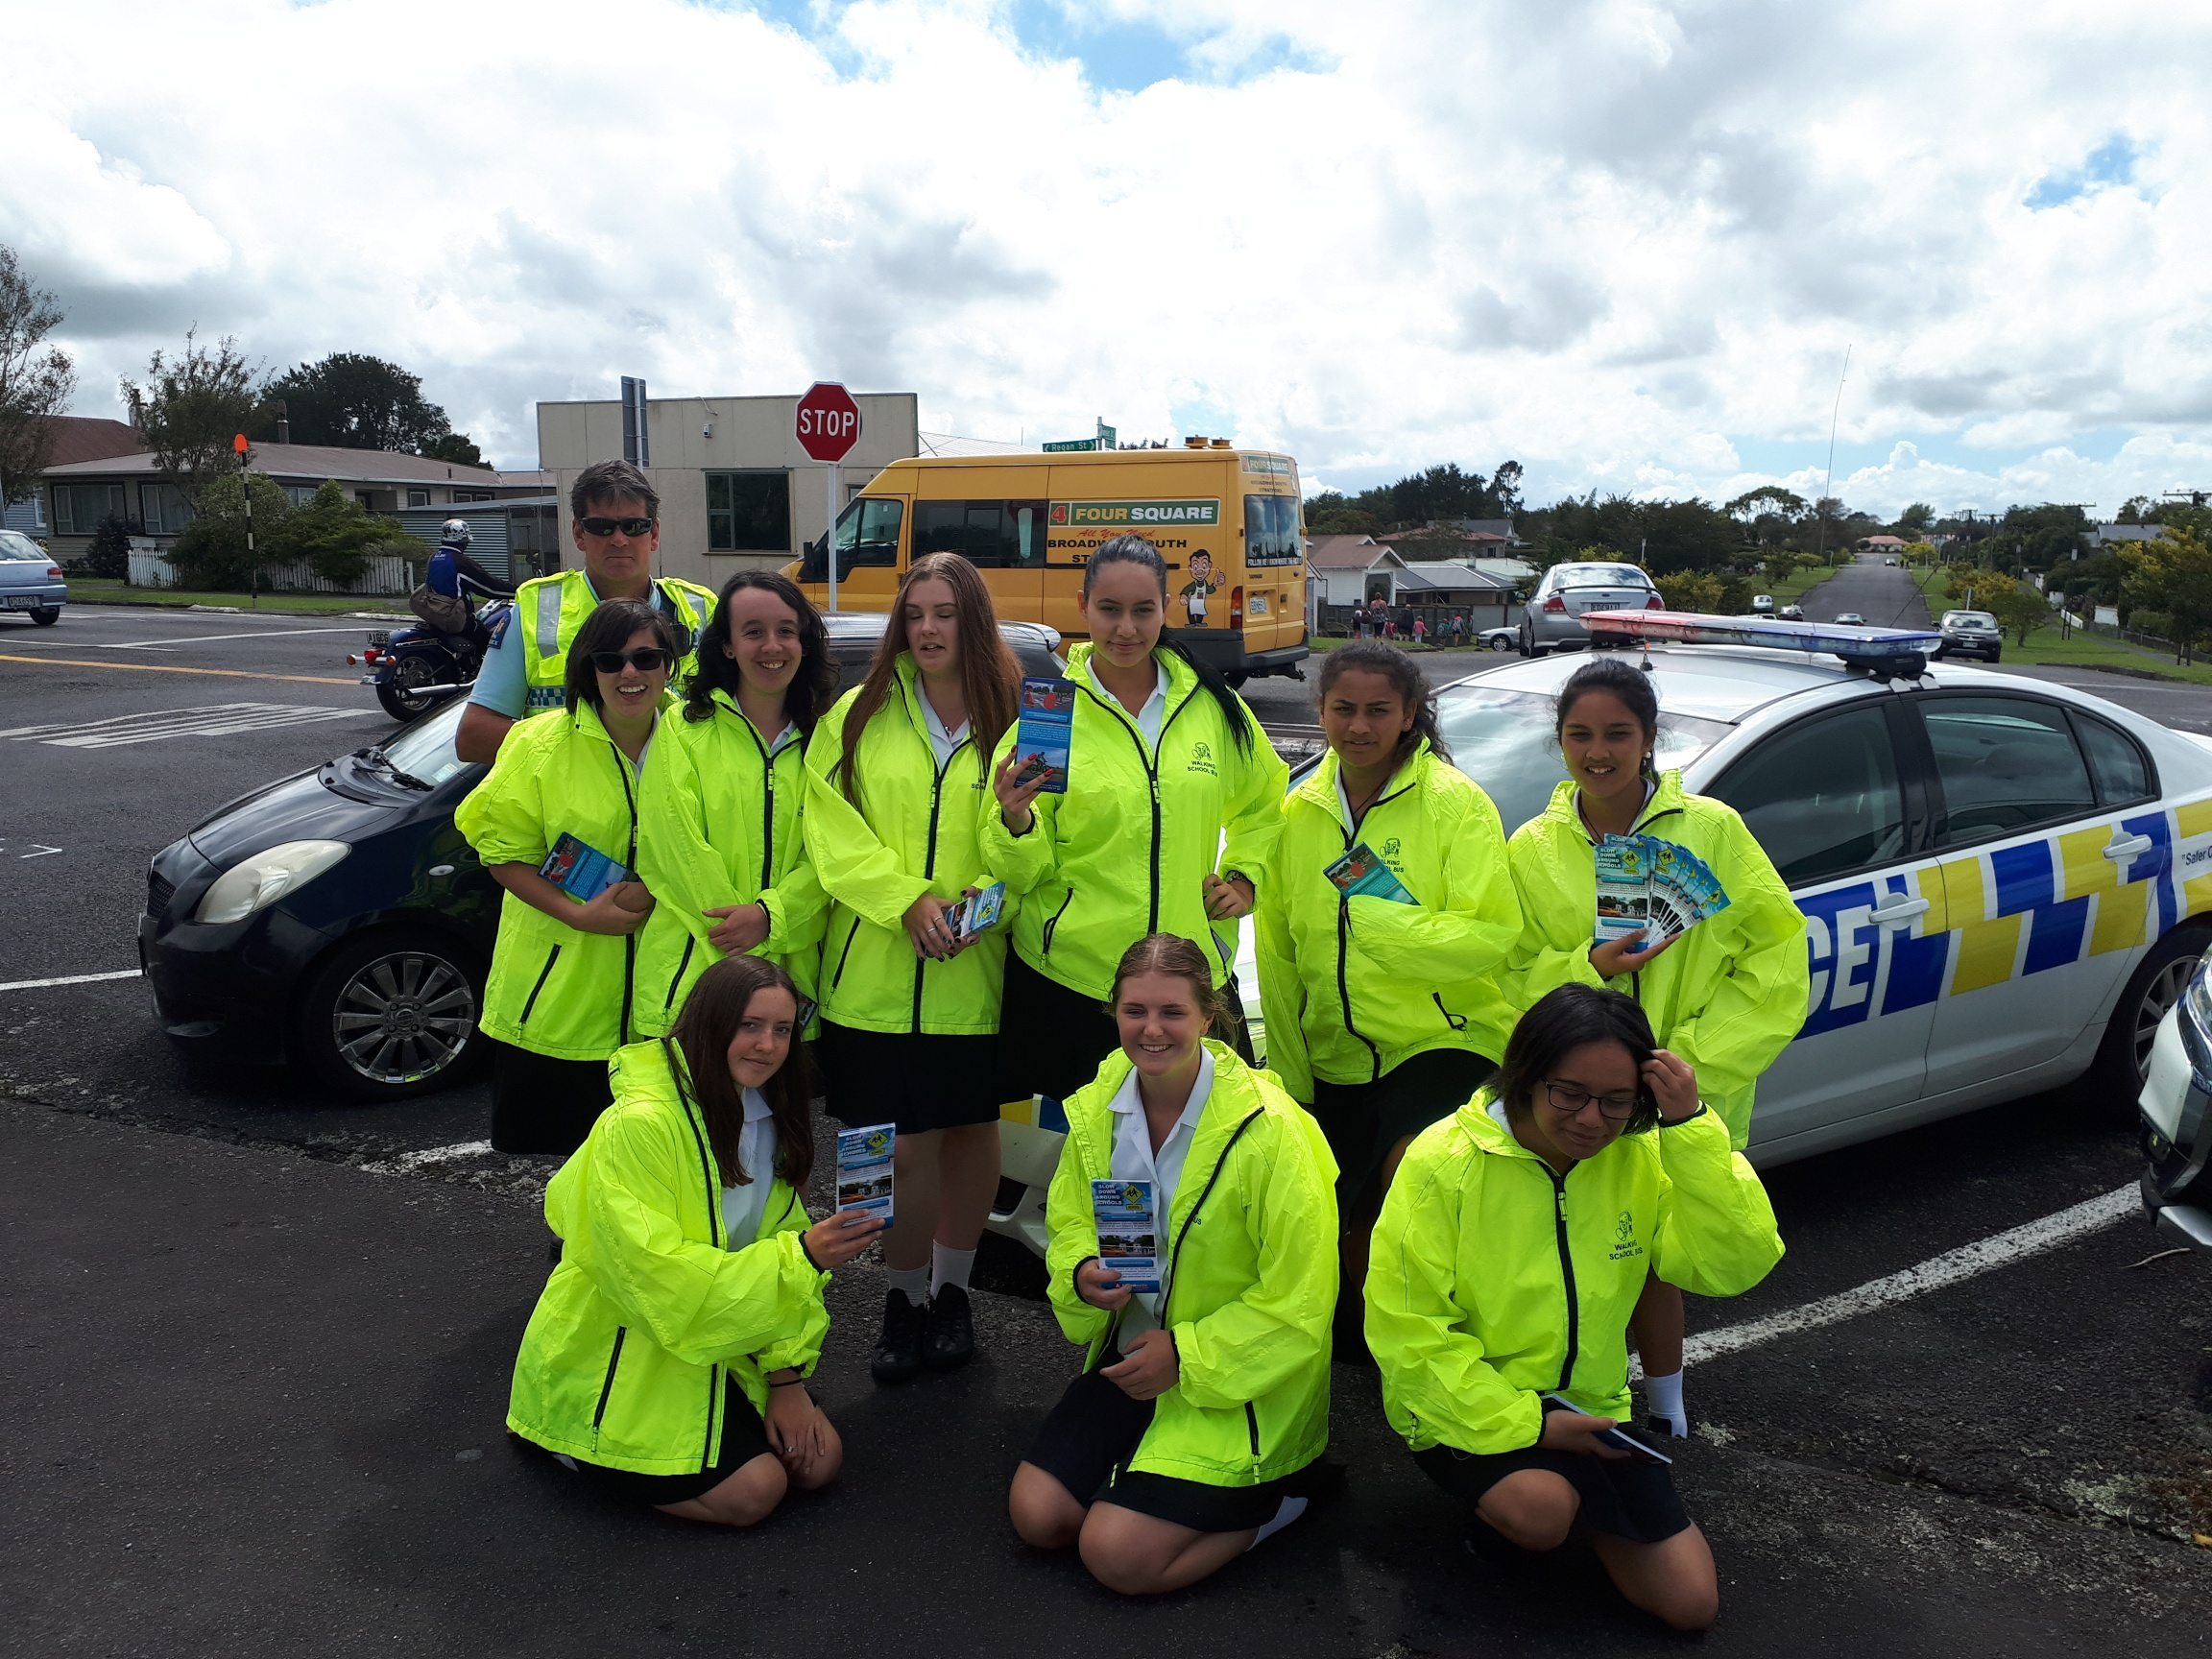 Stratford High School SADD students collaborating with local council and helping with a Back to School campaign at Stratford Primary reminding parents to park safely when picking up their children